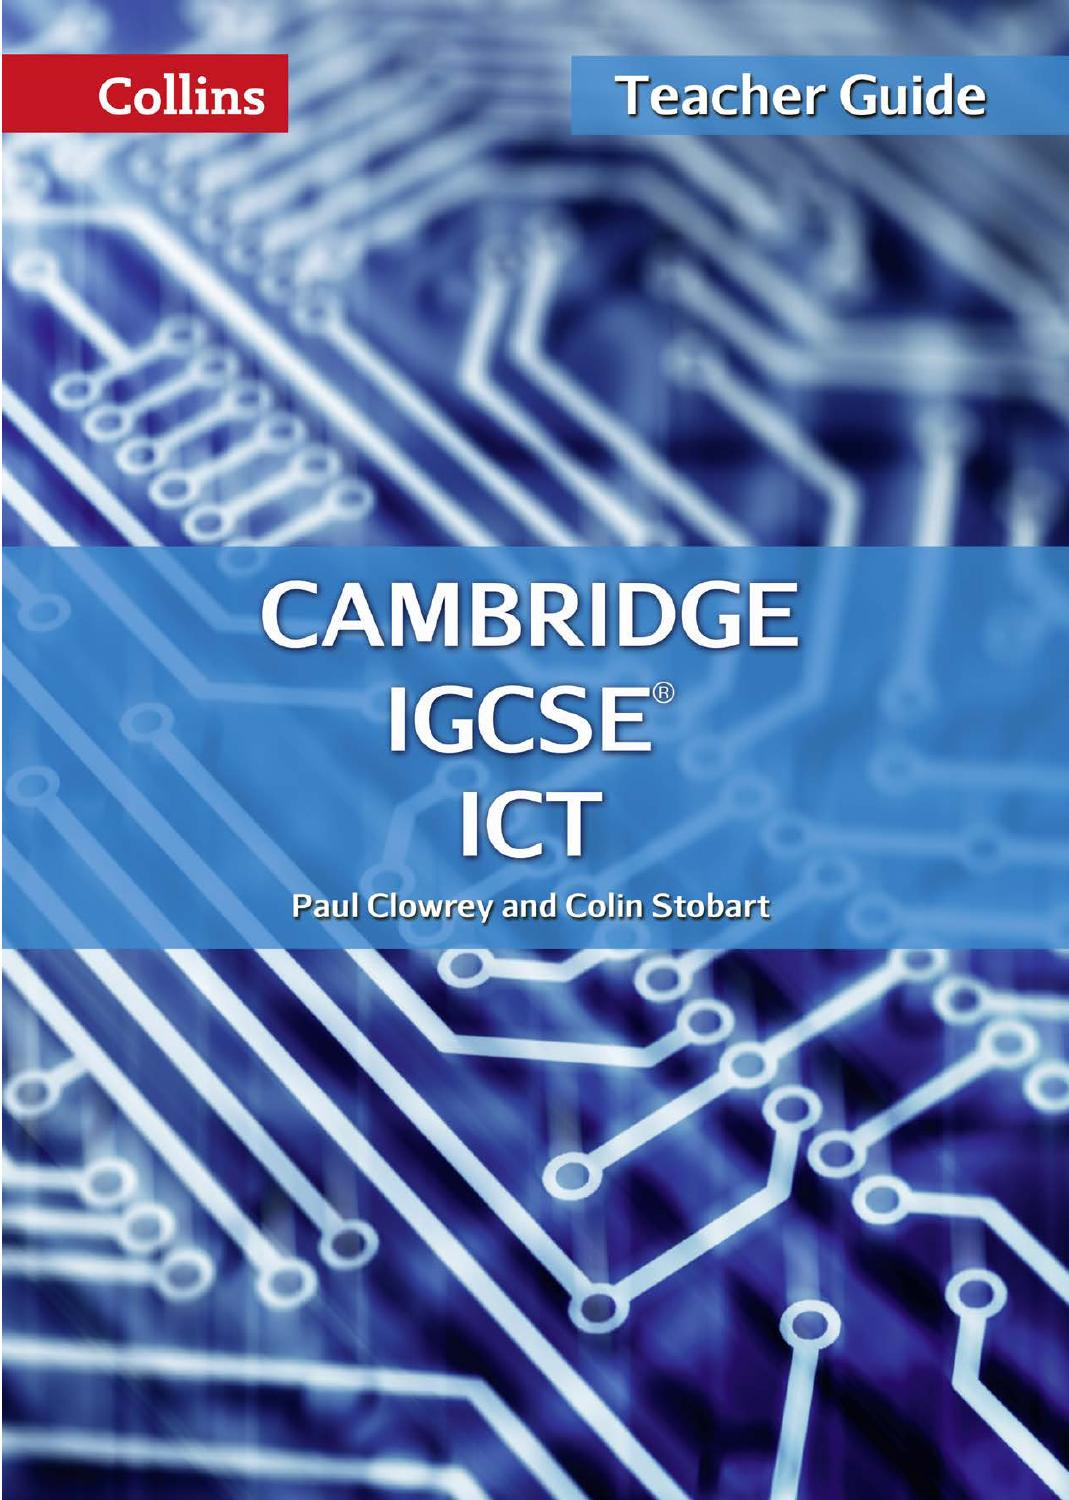 hight resolution of Cambridge IGCSE ICT Teacher Guide by Collins - issuu